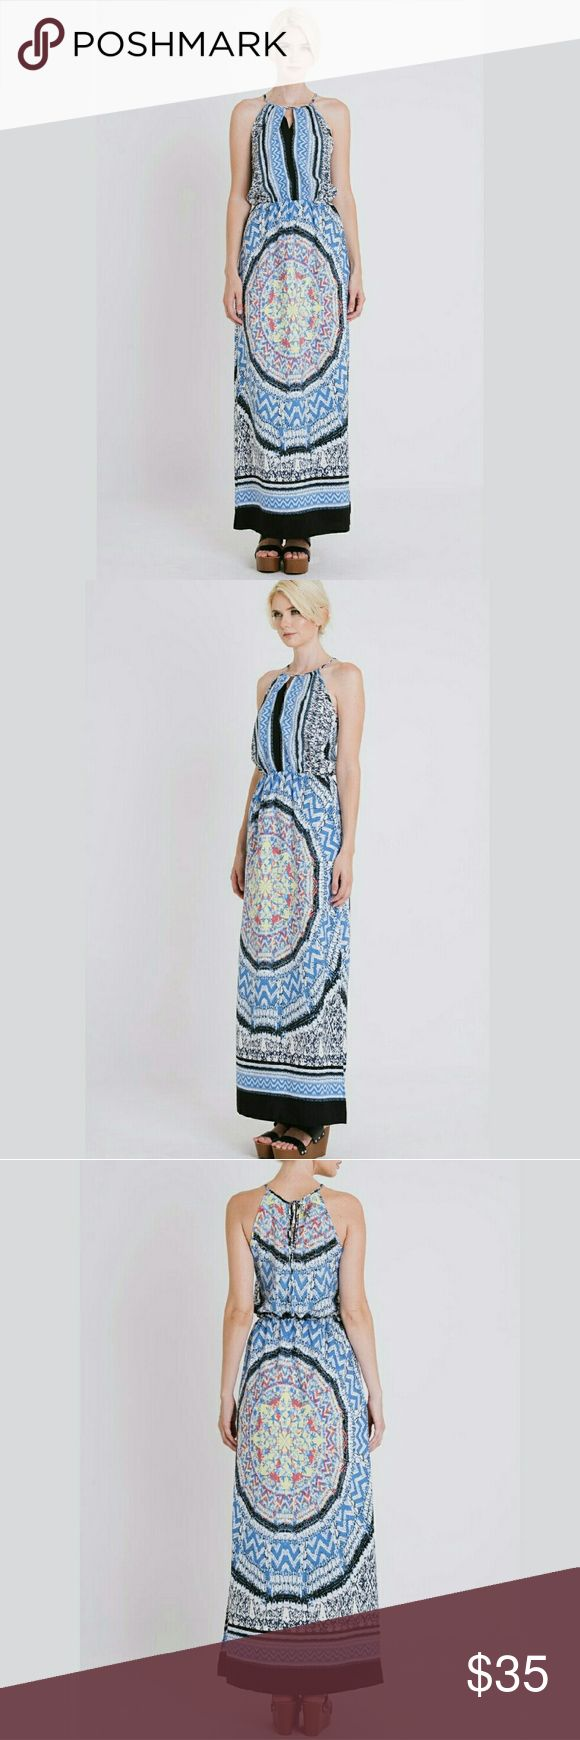 1856DR2 TANK MAXI DRESS AVAILABLE: S-M-L  BRAND NEW Geometric print, diamante, tank maxi dress with tied keyhole  ?PLEASE LET ME KNOW WHAT SIZE YOU WOULD WANT TO PURCHASE? Dresses Maxi